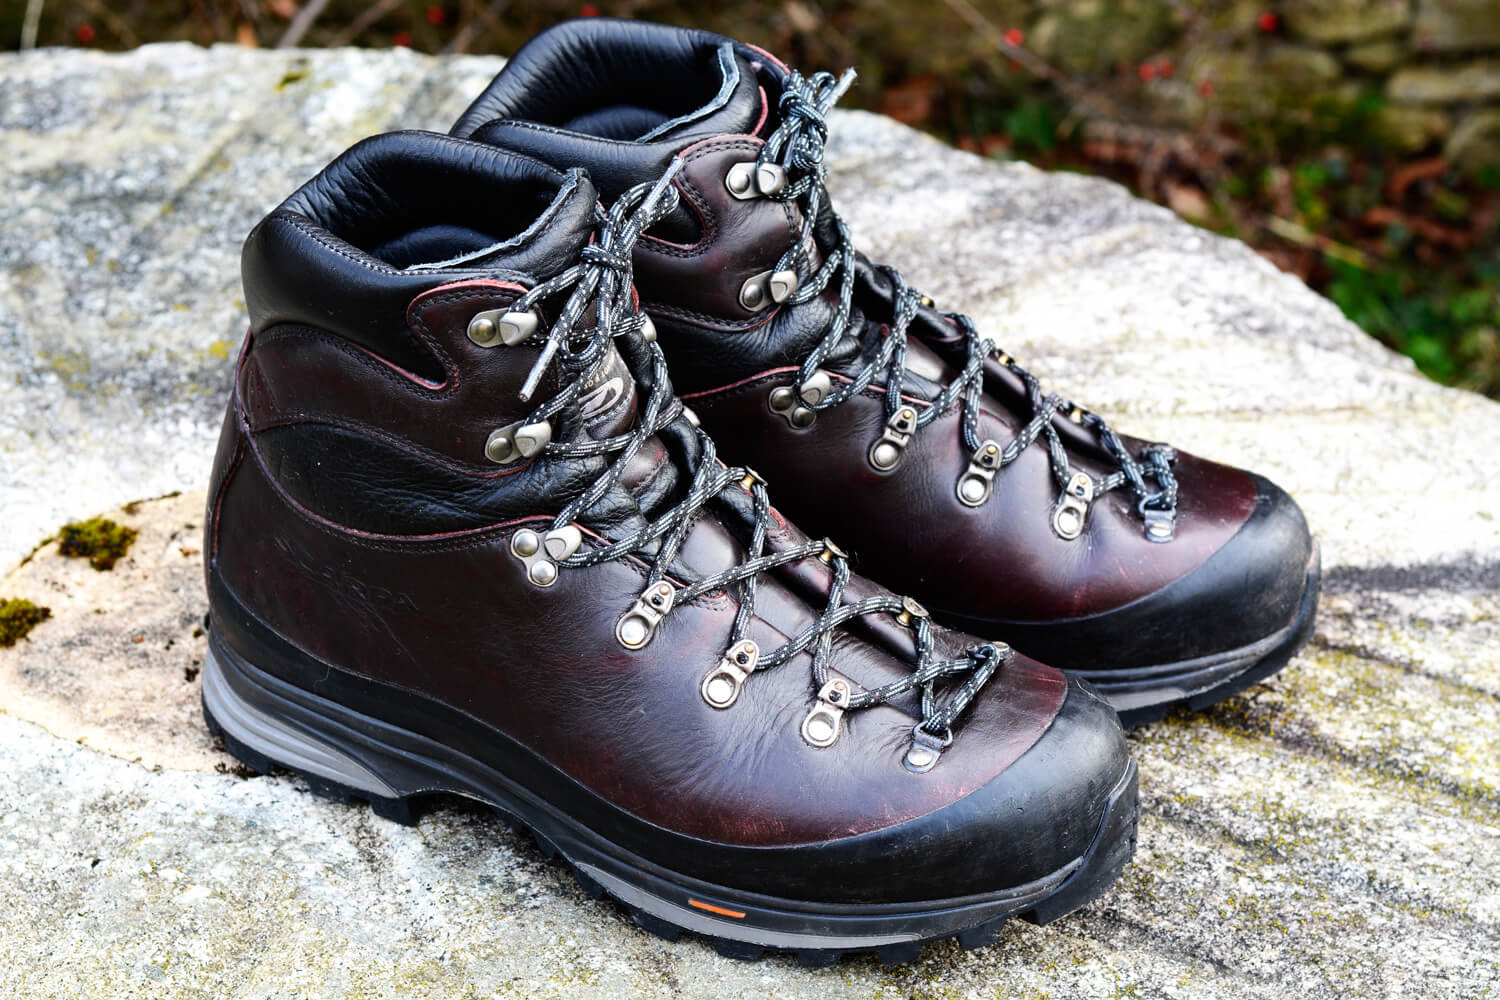 Review: Scarpa SL Activ boots